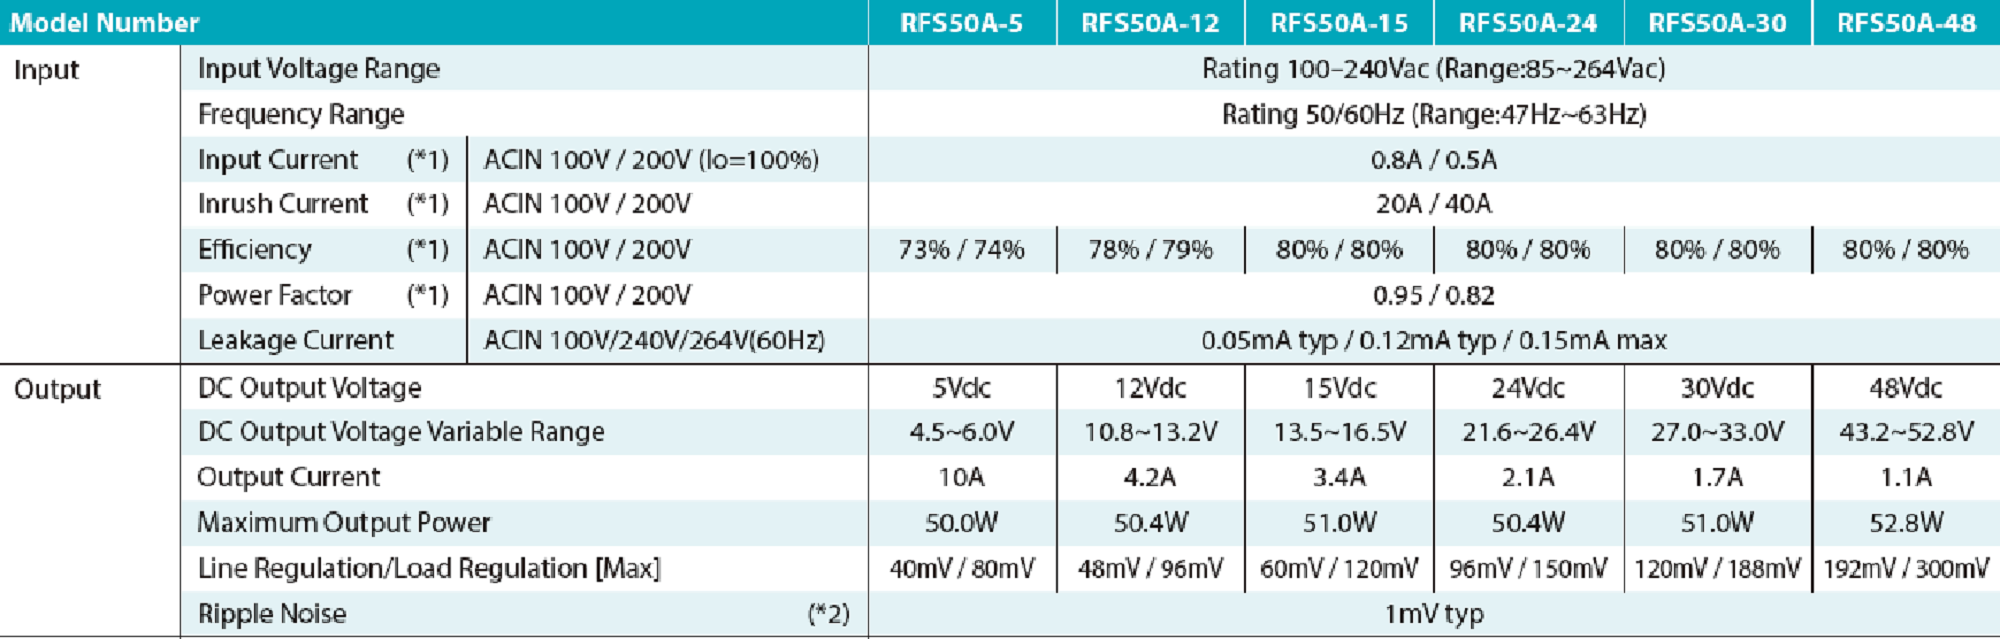 RFS50A low noise powers supply specs